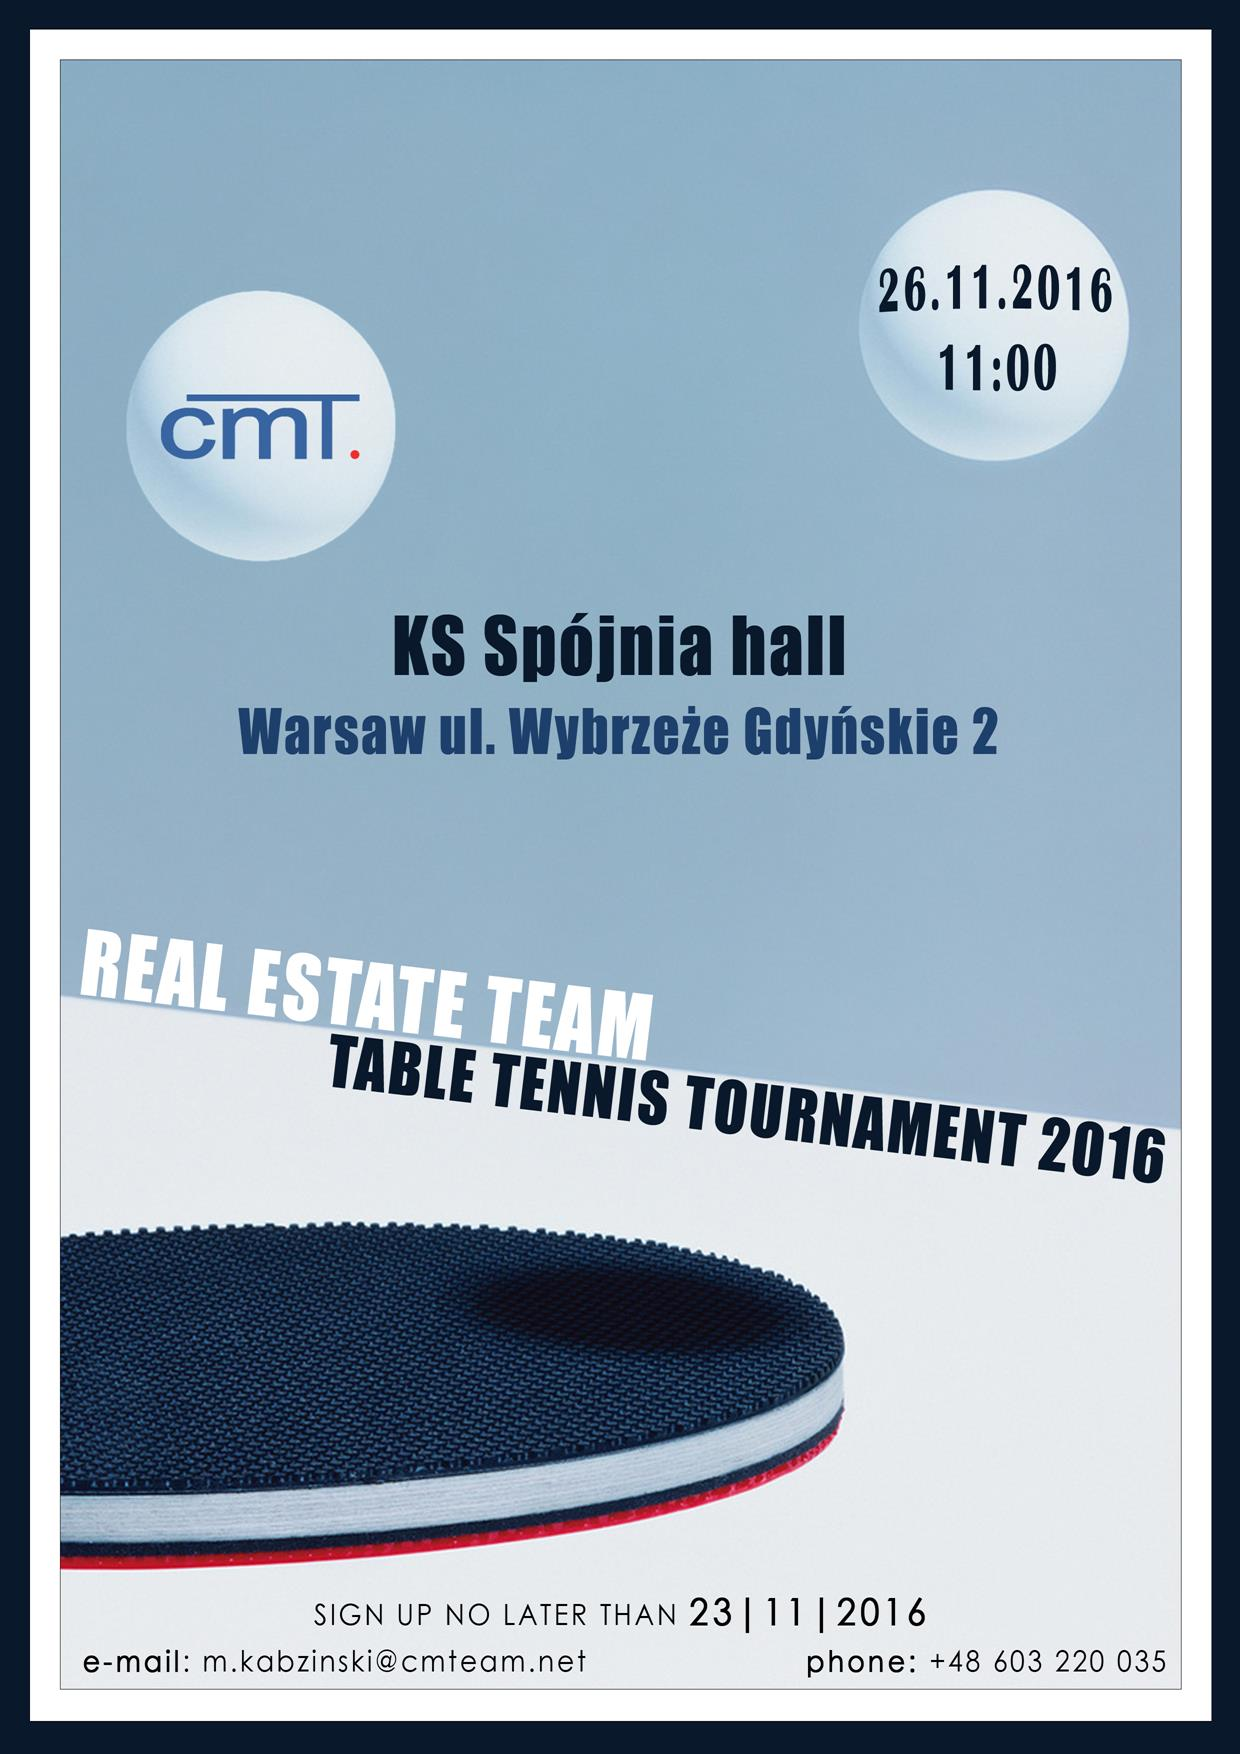 I edición Real Estate Team Table Tennis Tournament